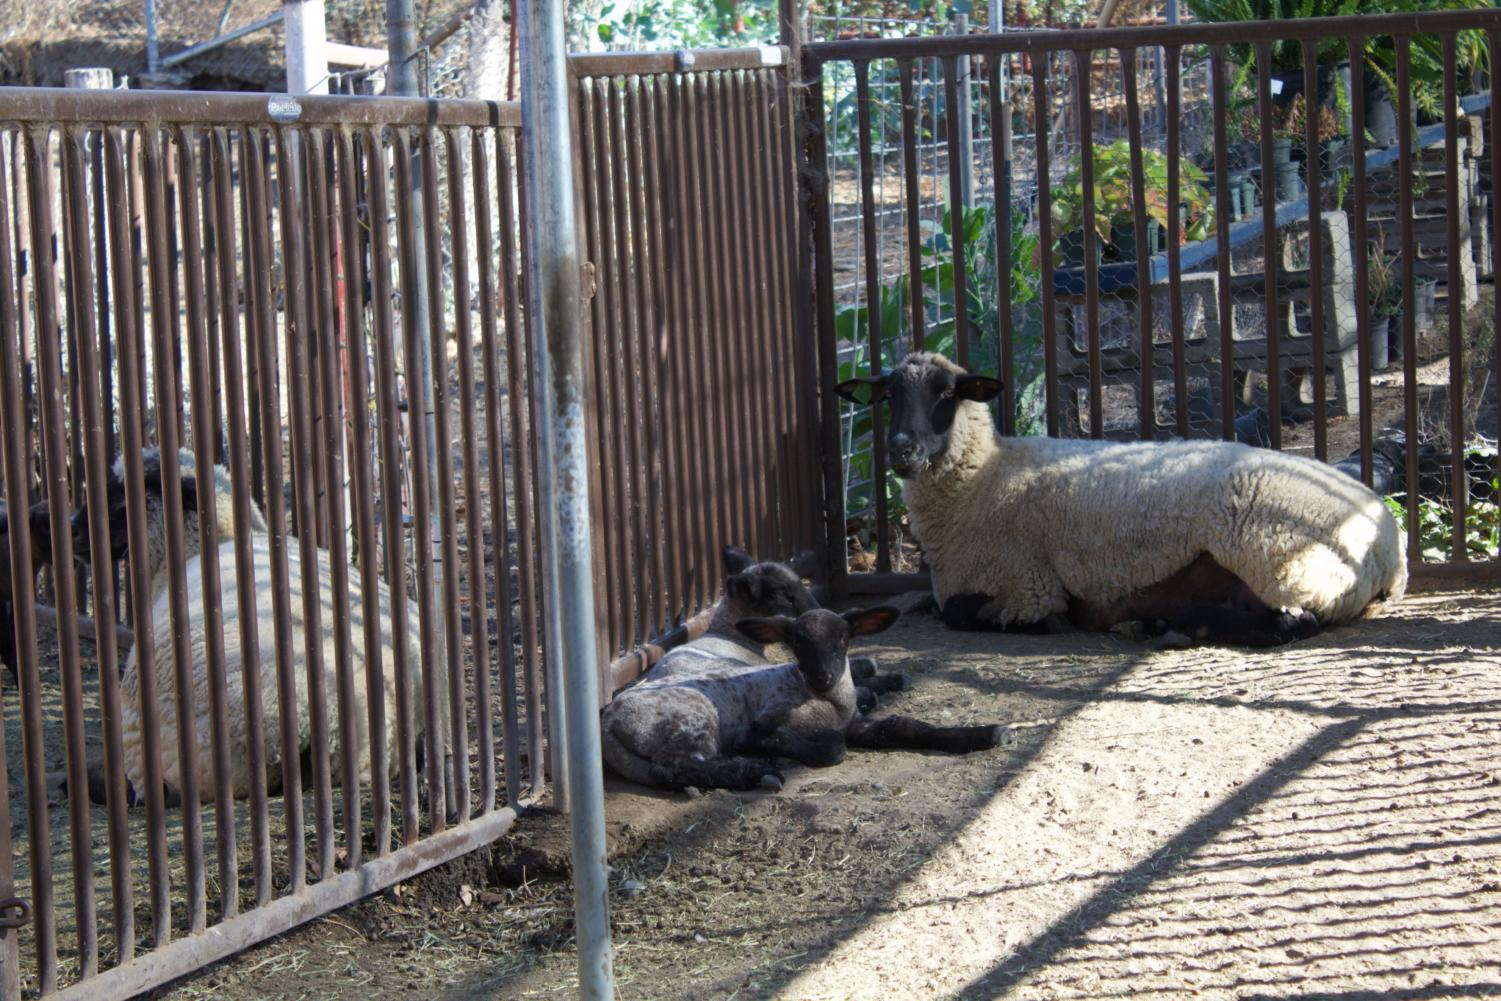 One of Cam High's newborn lambs resting in the shade near its mother.